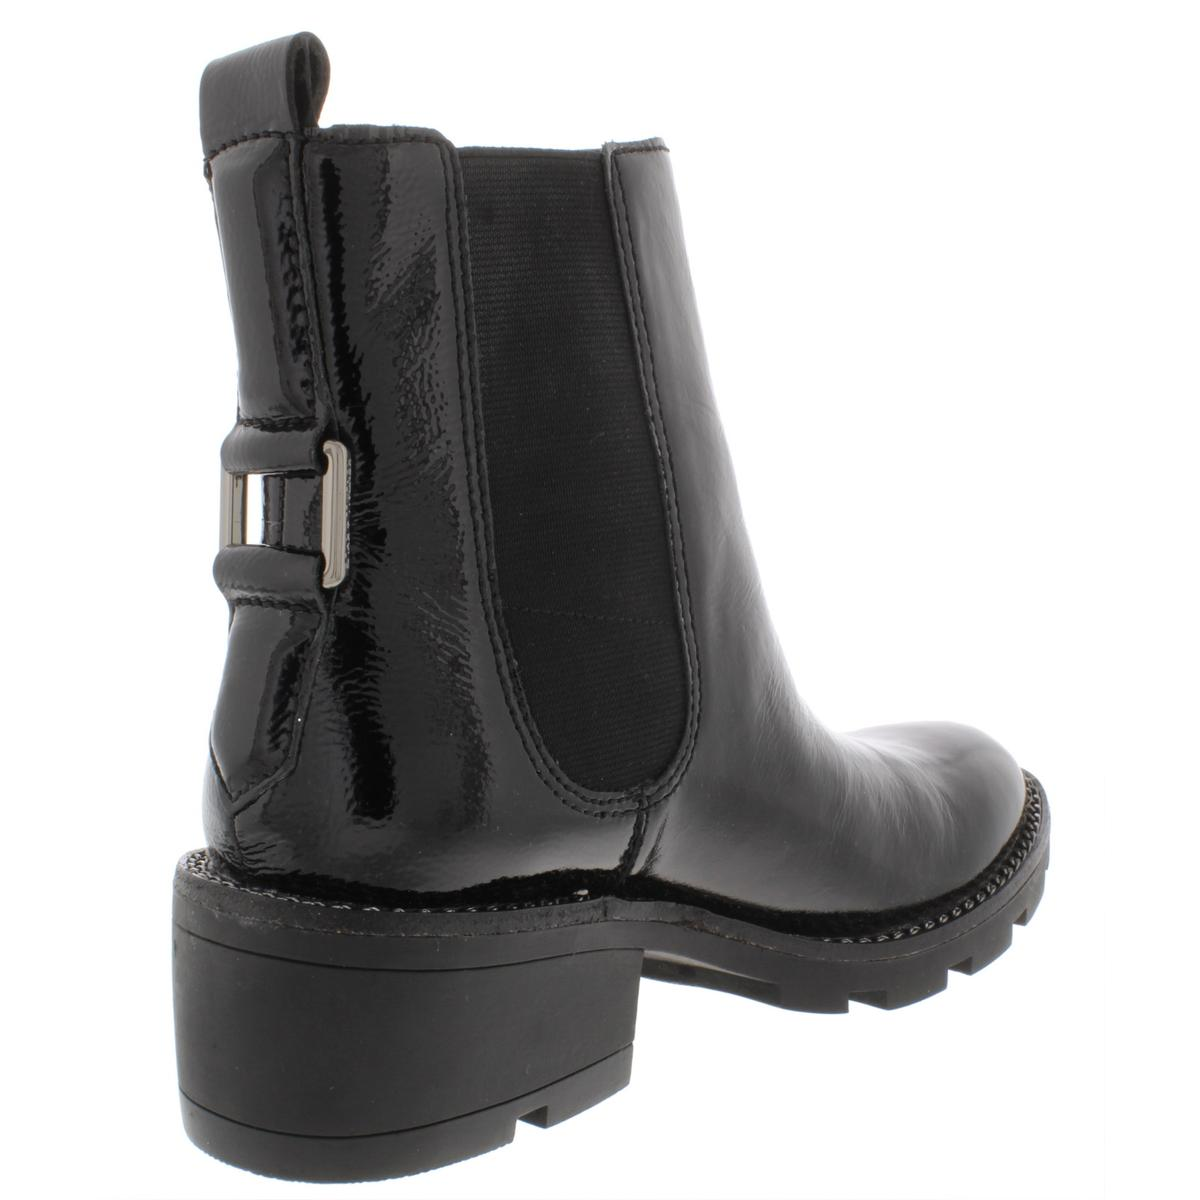 Kendall + Kylie Womens Porter Patent Leather Leather Leather Chain Chelsea Boots shoes BHFO 3987 5ea083